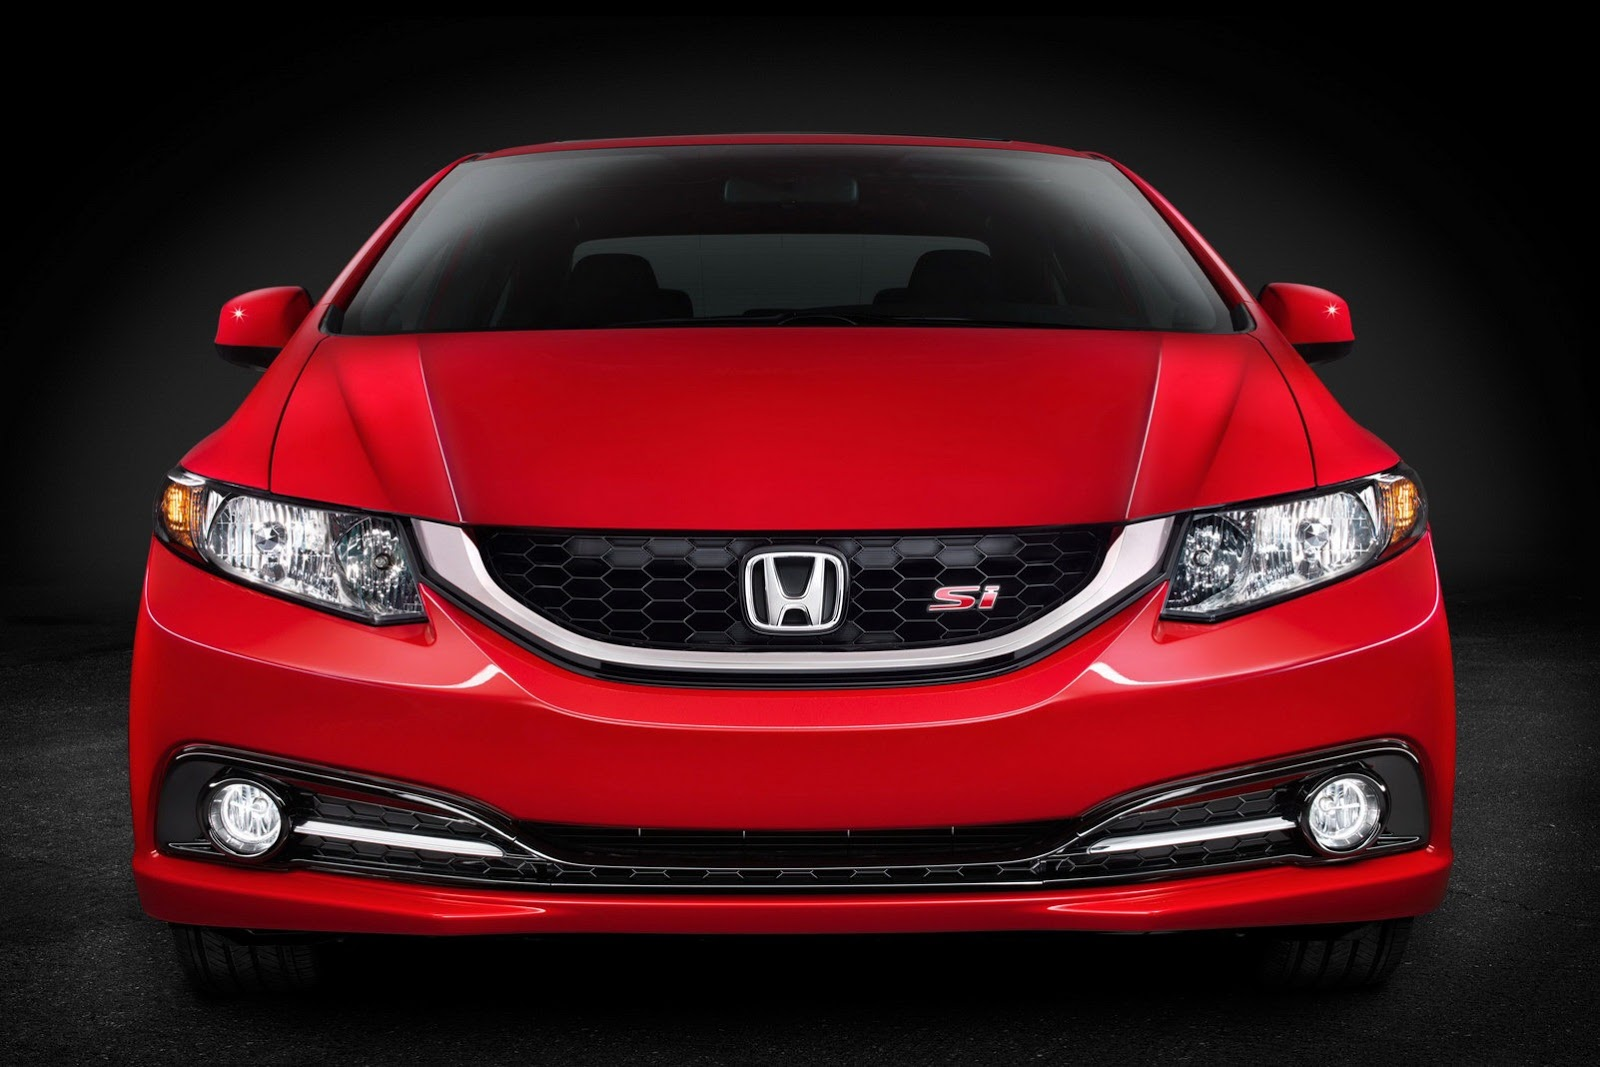 2013 honda civic si fully detailed pricing increased autoevolution. Black Bedroom Furniture Sets. Home Design Ideas